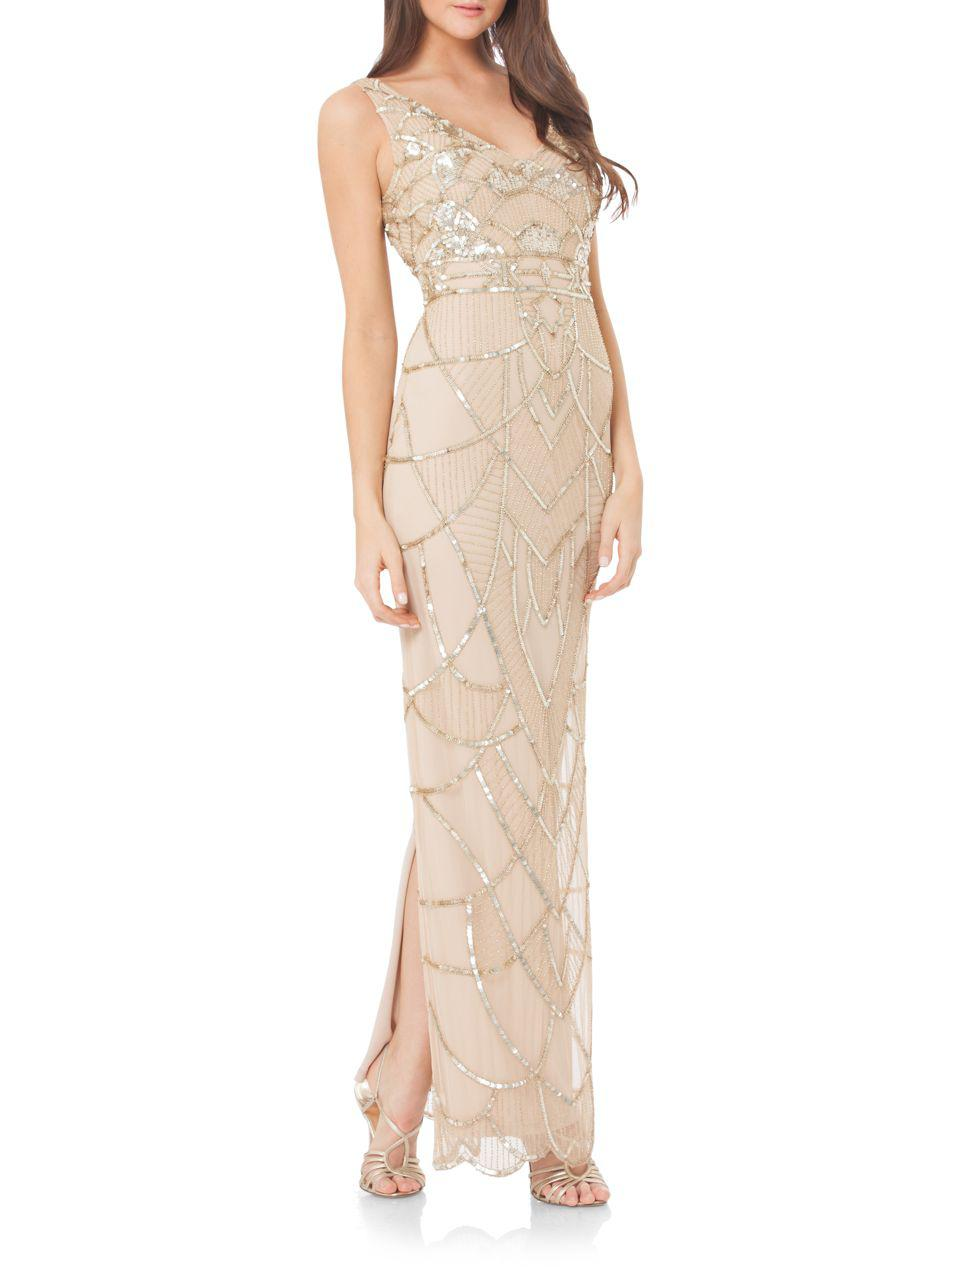 Lyst - Js Collections Sequin Accented Gown